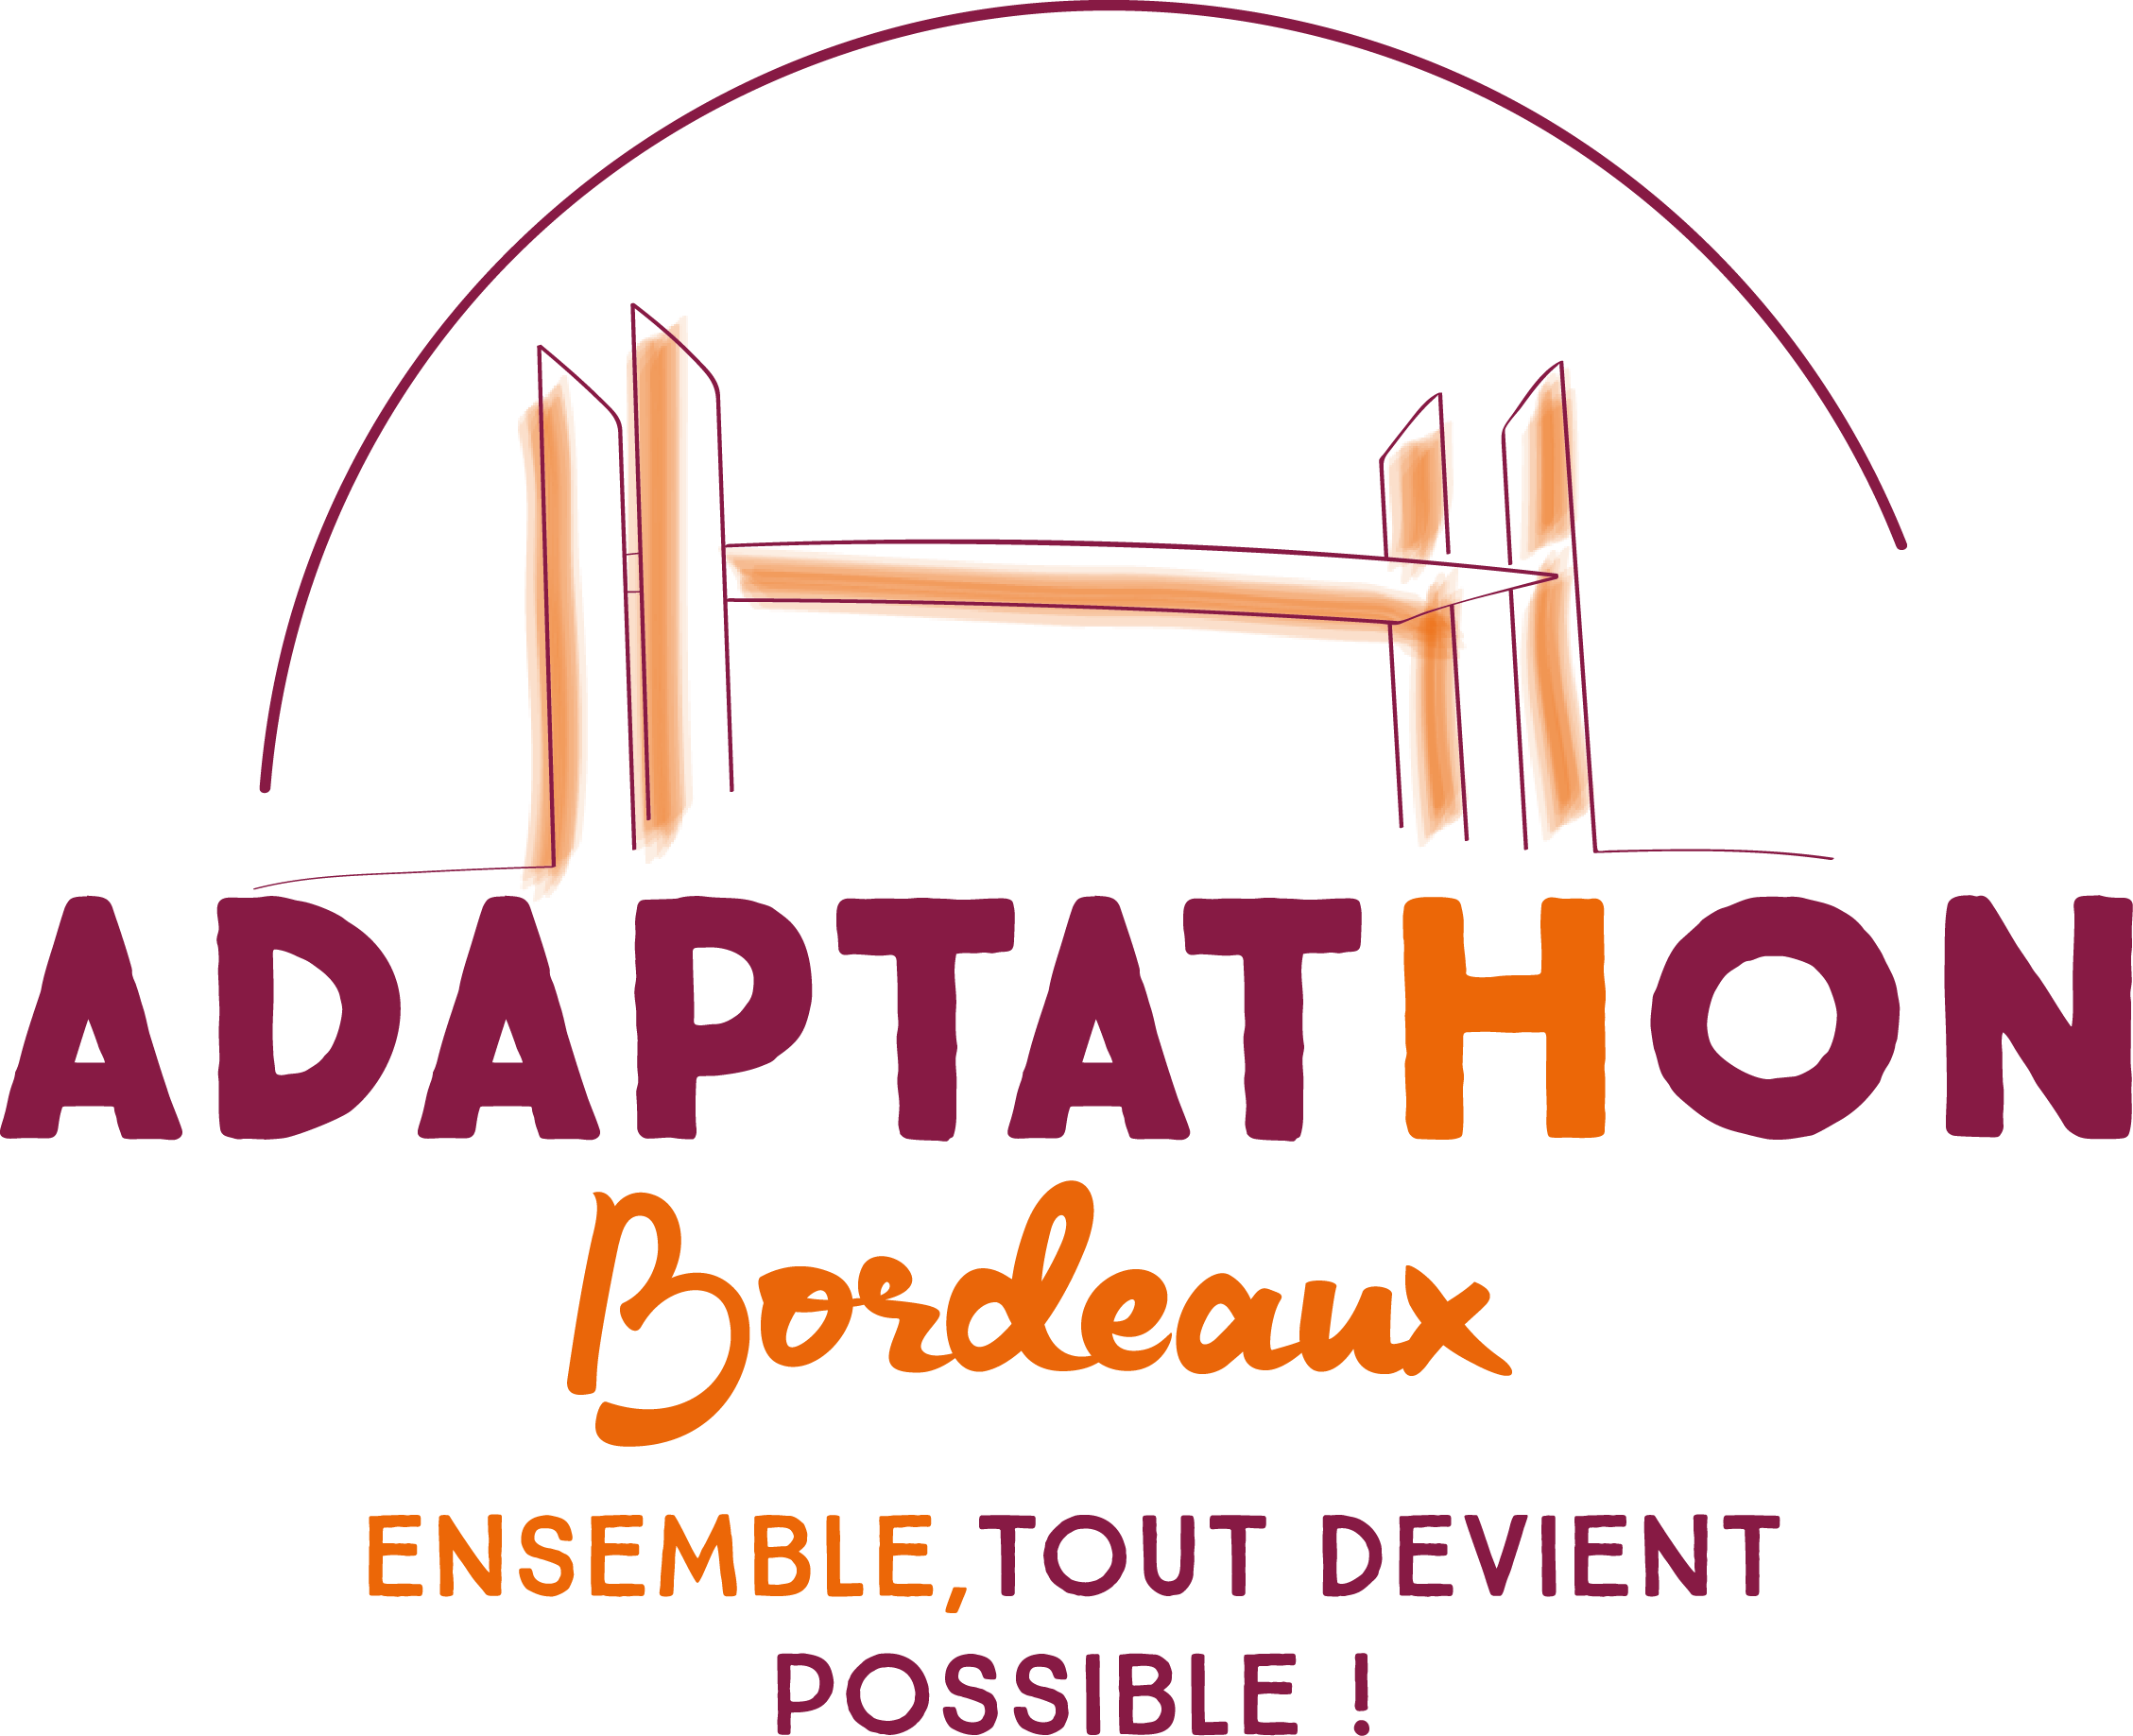 logo adaptathon-bordeaux 2019